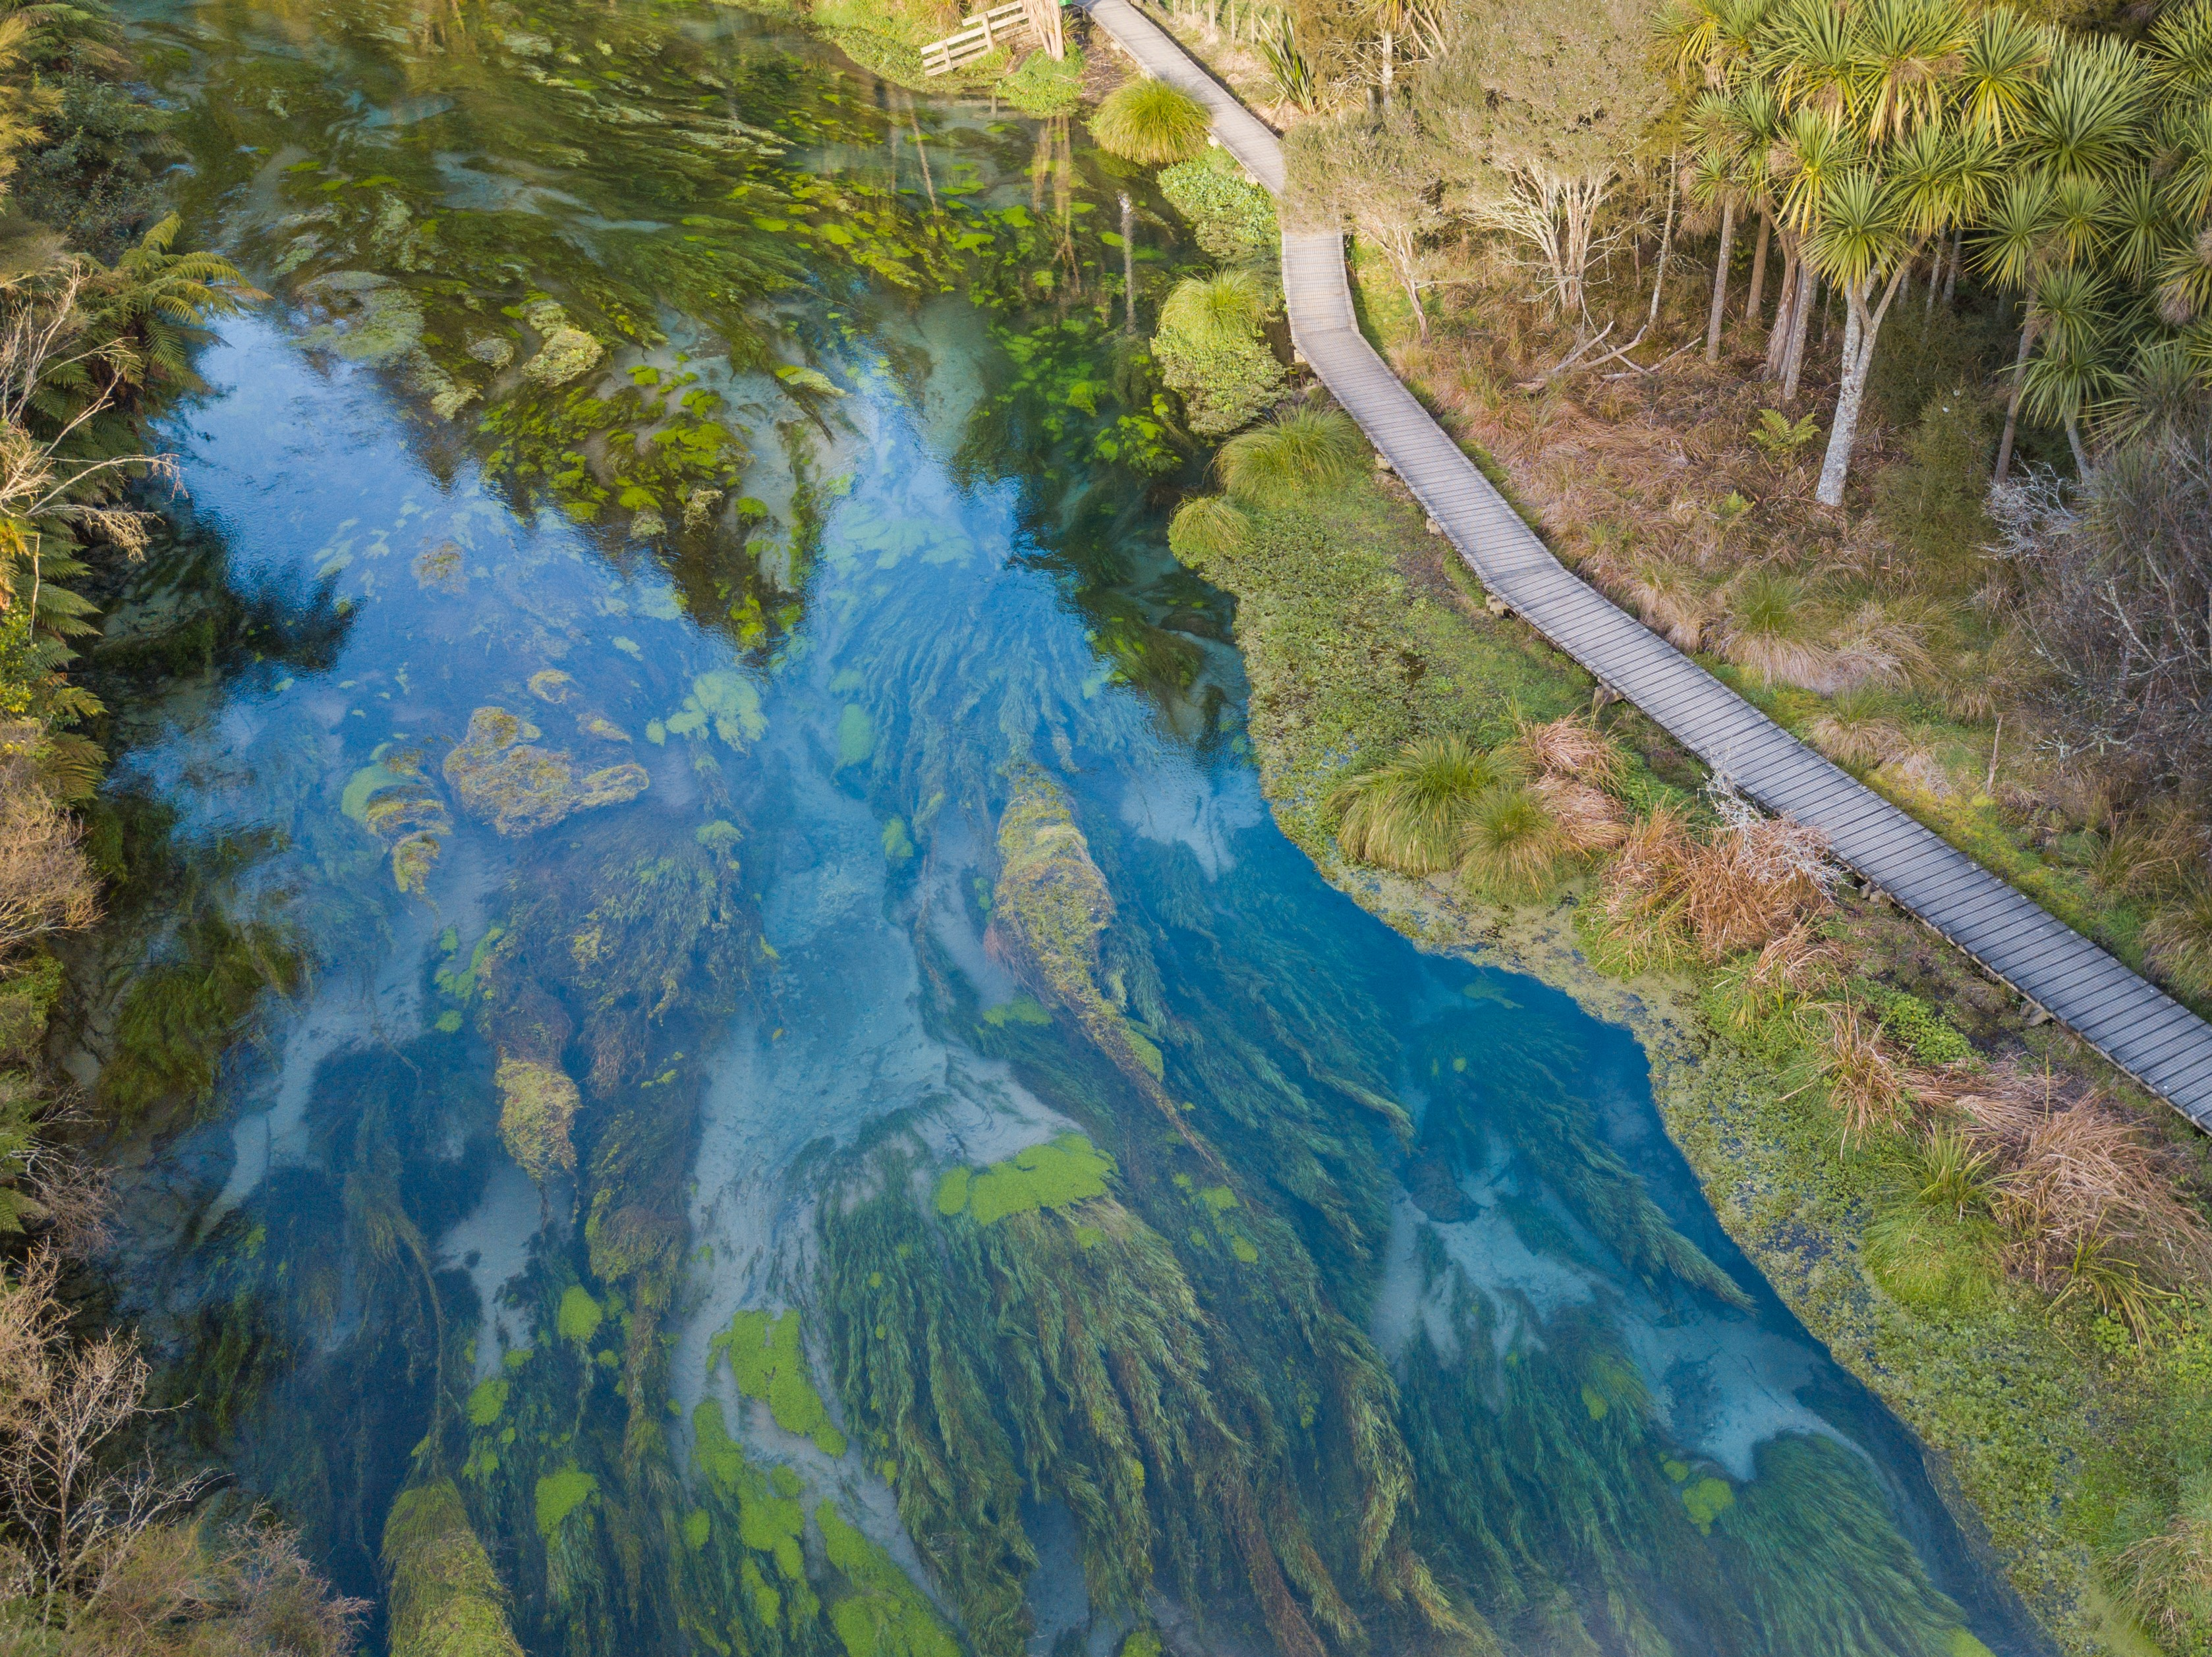 The Blue Spring and Te Waihou Walkway